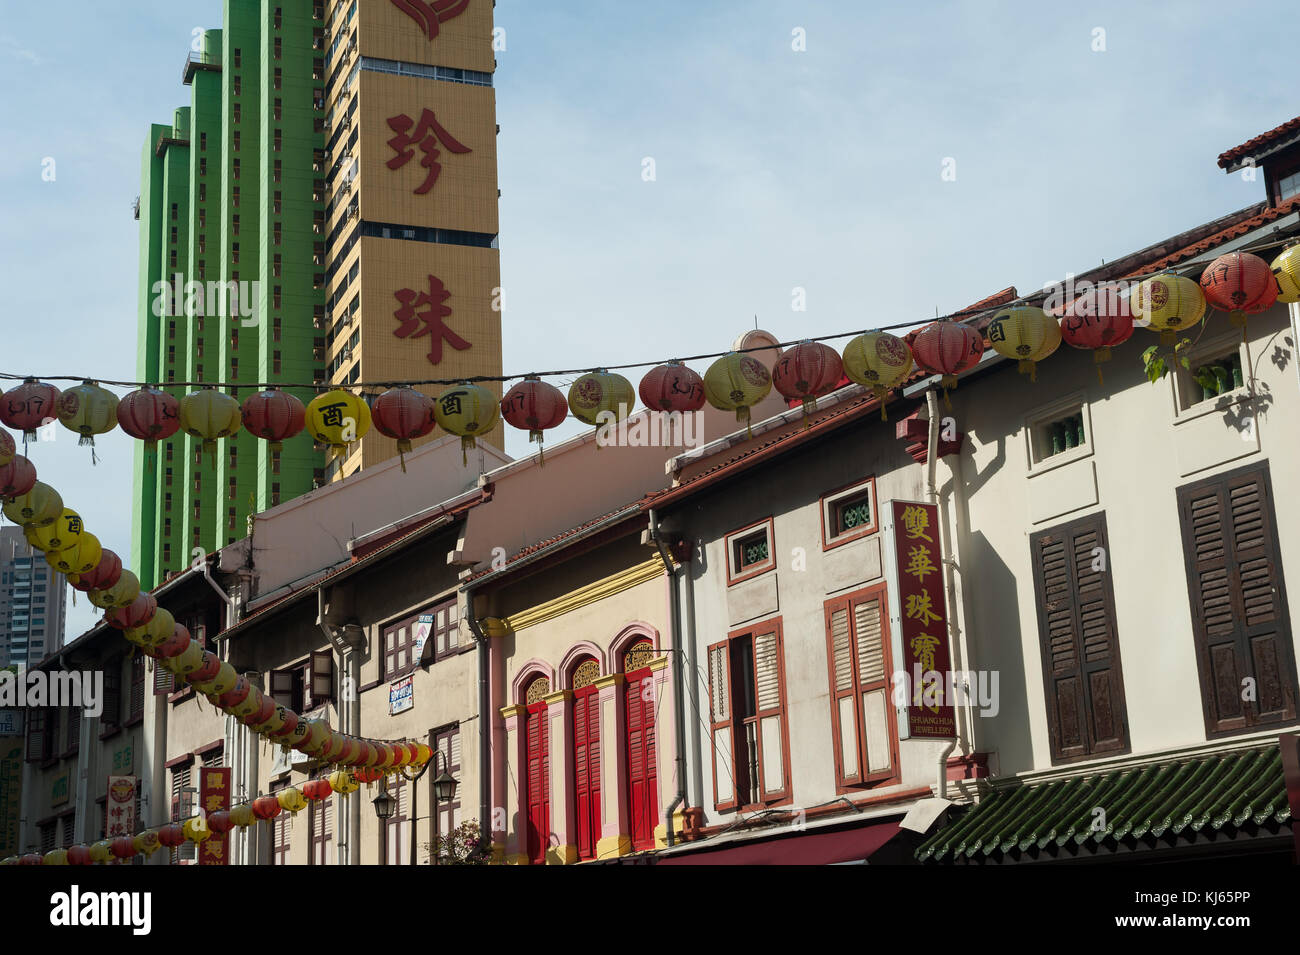 03.11.2017, Singapore, Republic of Singapore, Asia - Traditional shop houses in Singapore's Chinatown district. Stock Photo